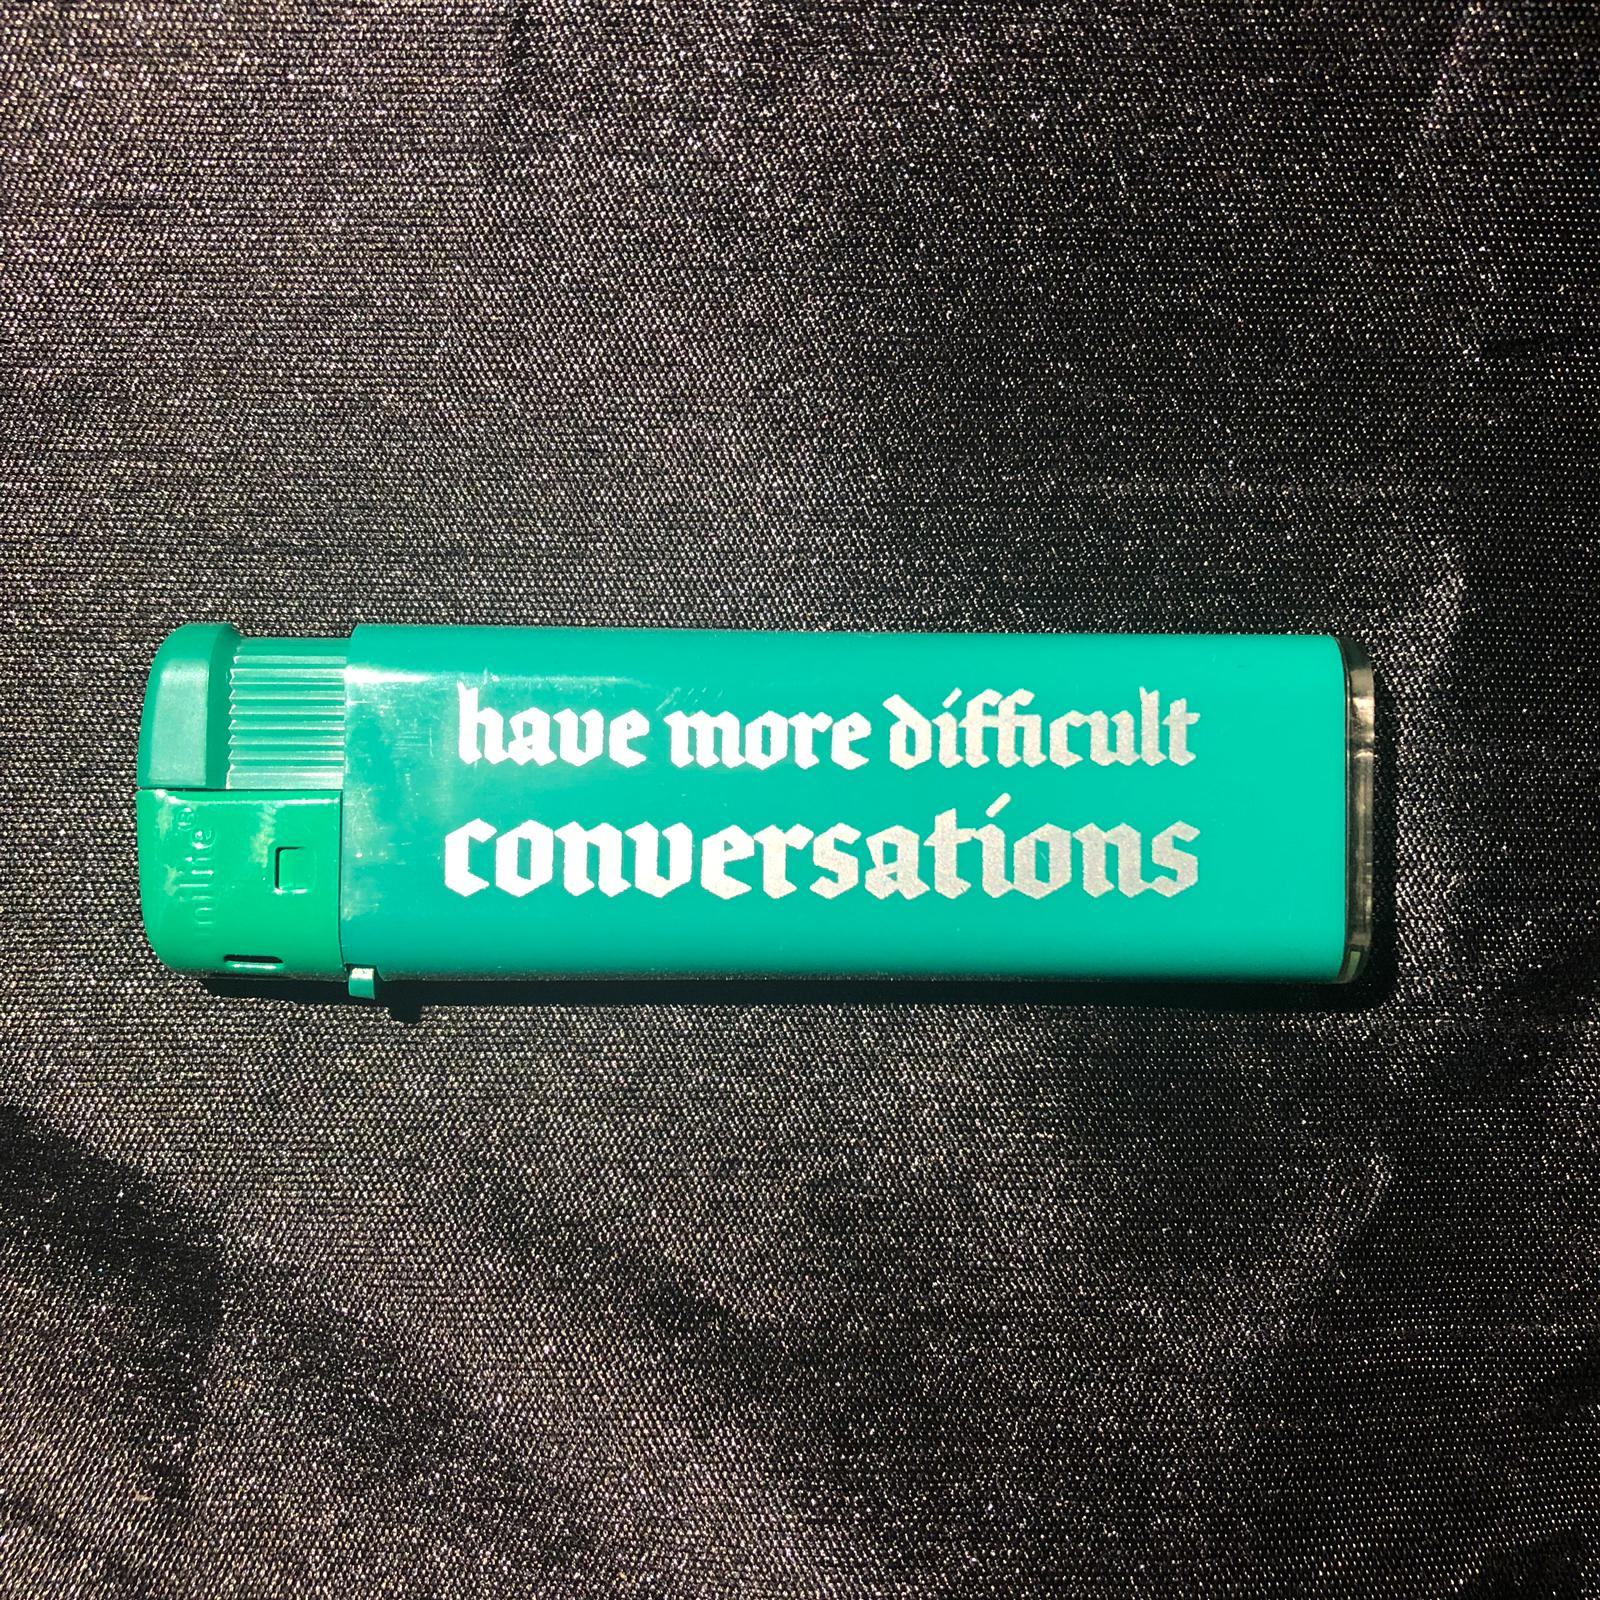 Difficult Conversations Lighter